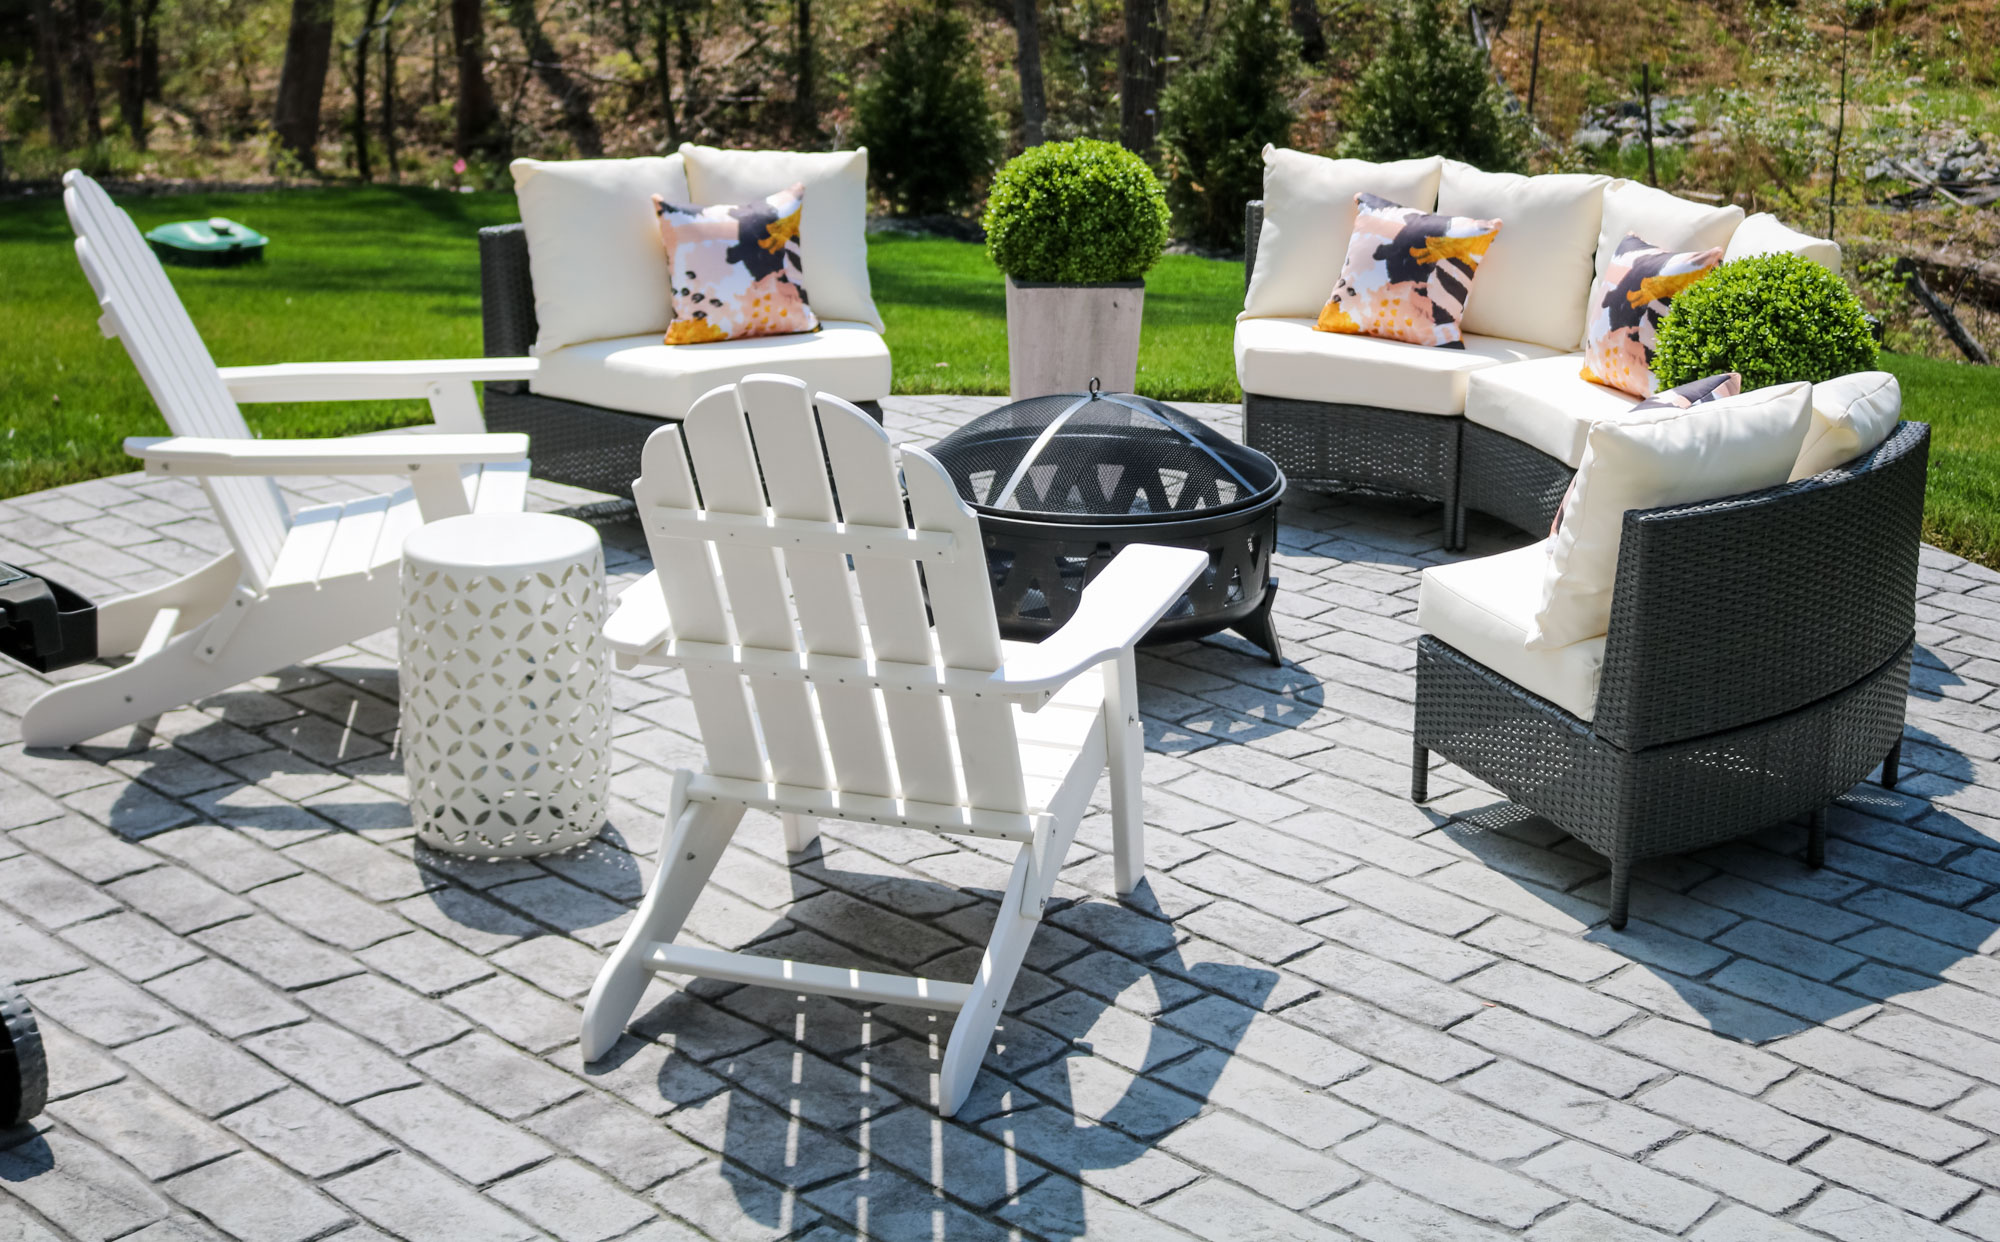 using outdoor furniture indoors